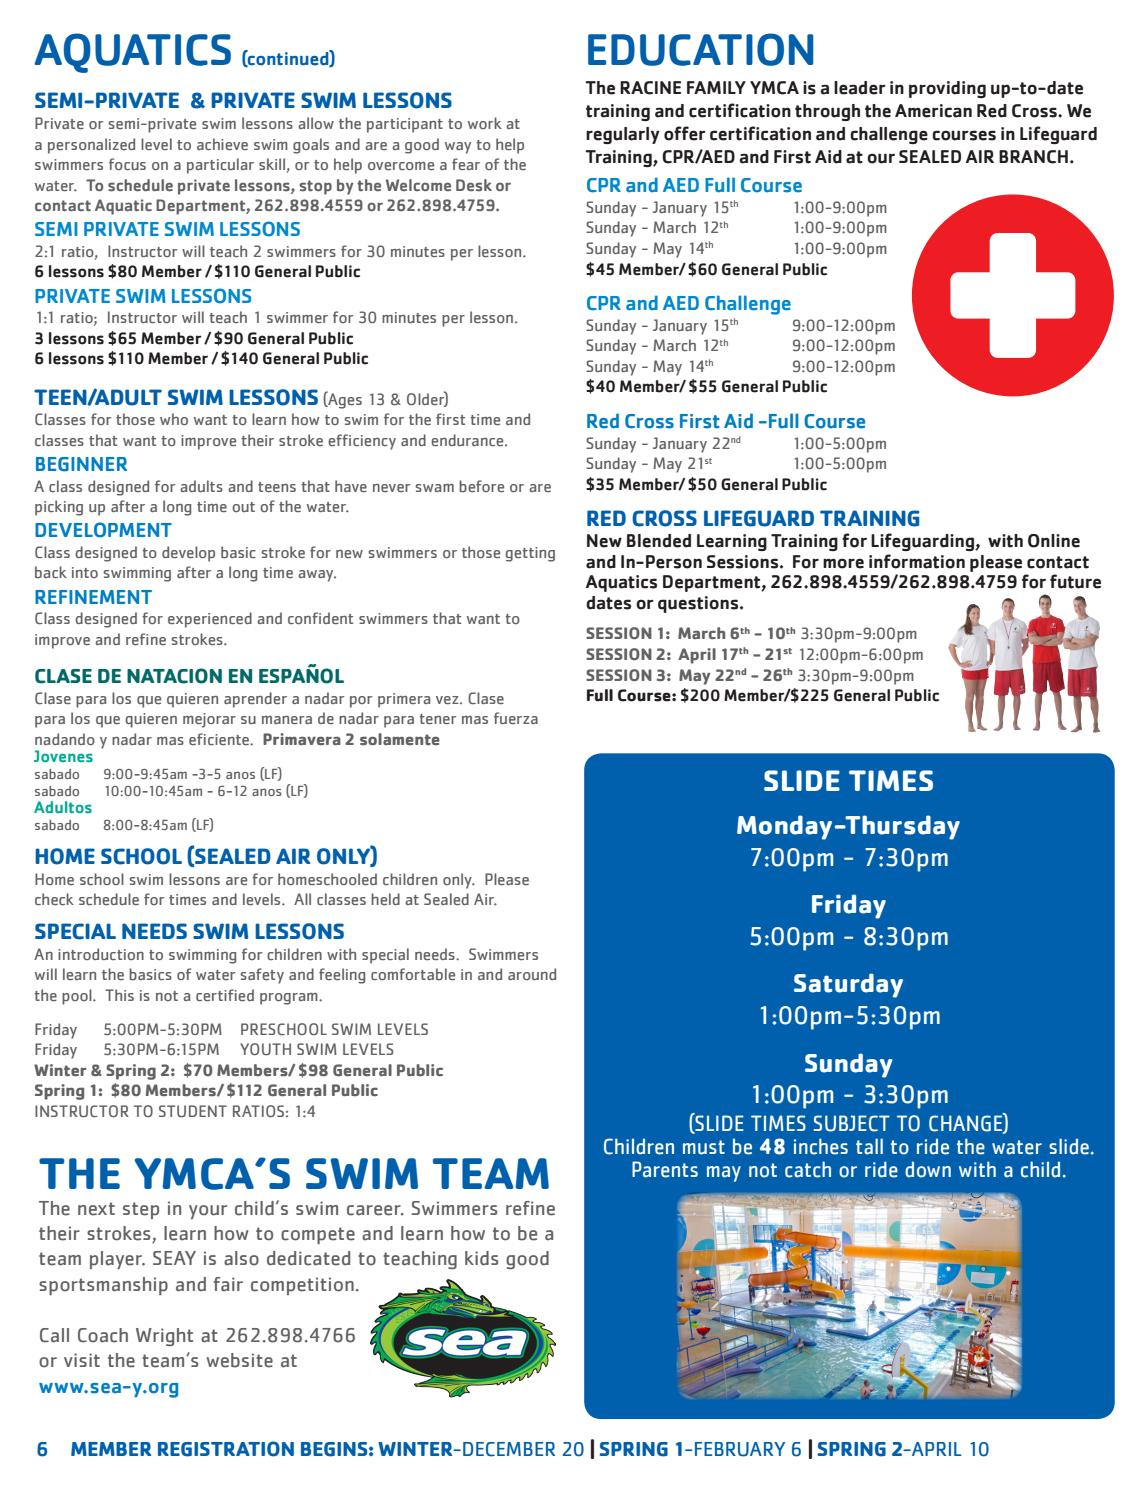 Racine Family Ymca 2017 Winterspring Brochure By Racine Family Ymca